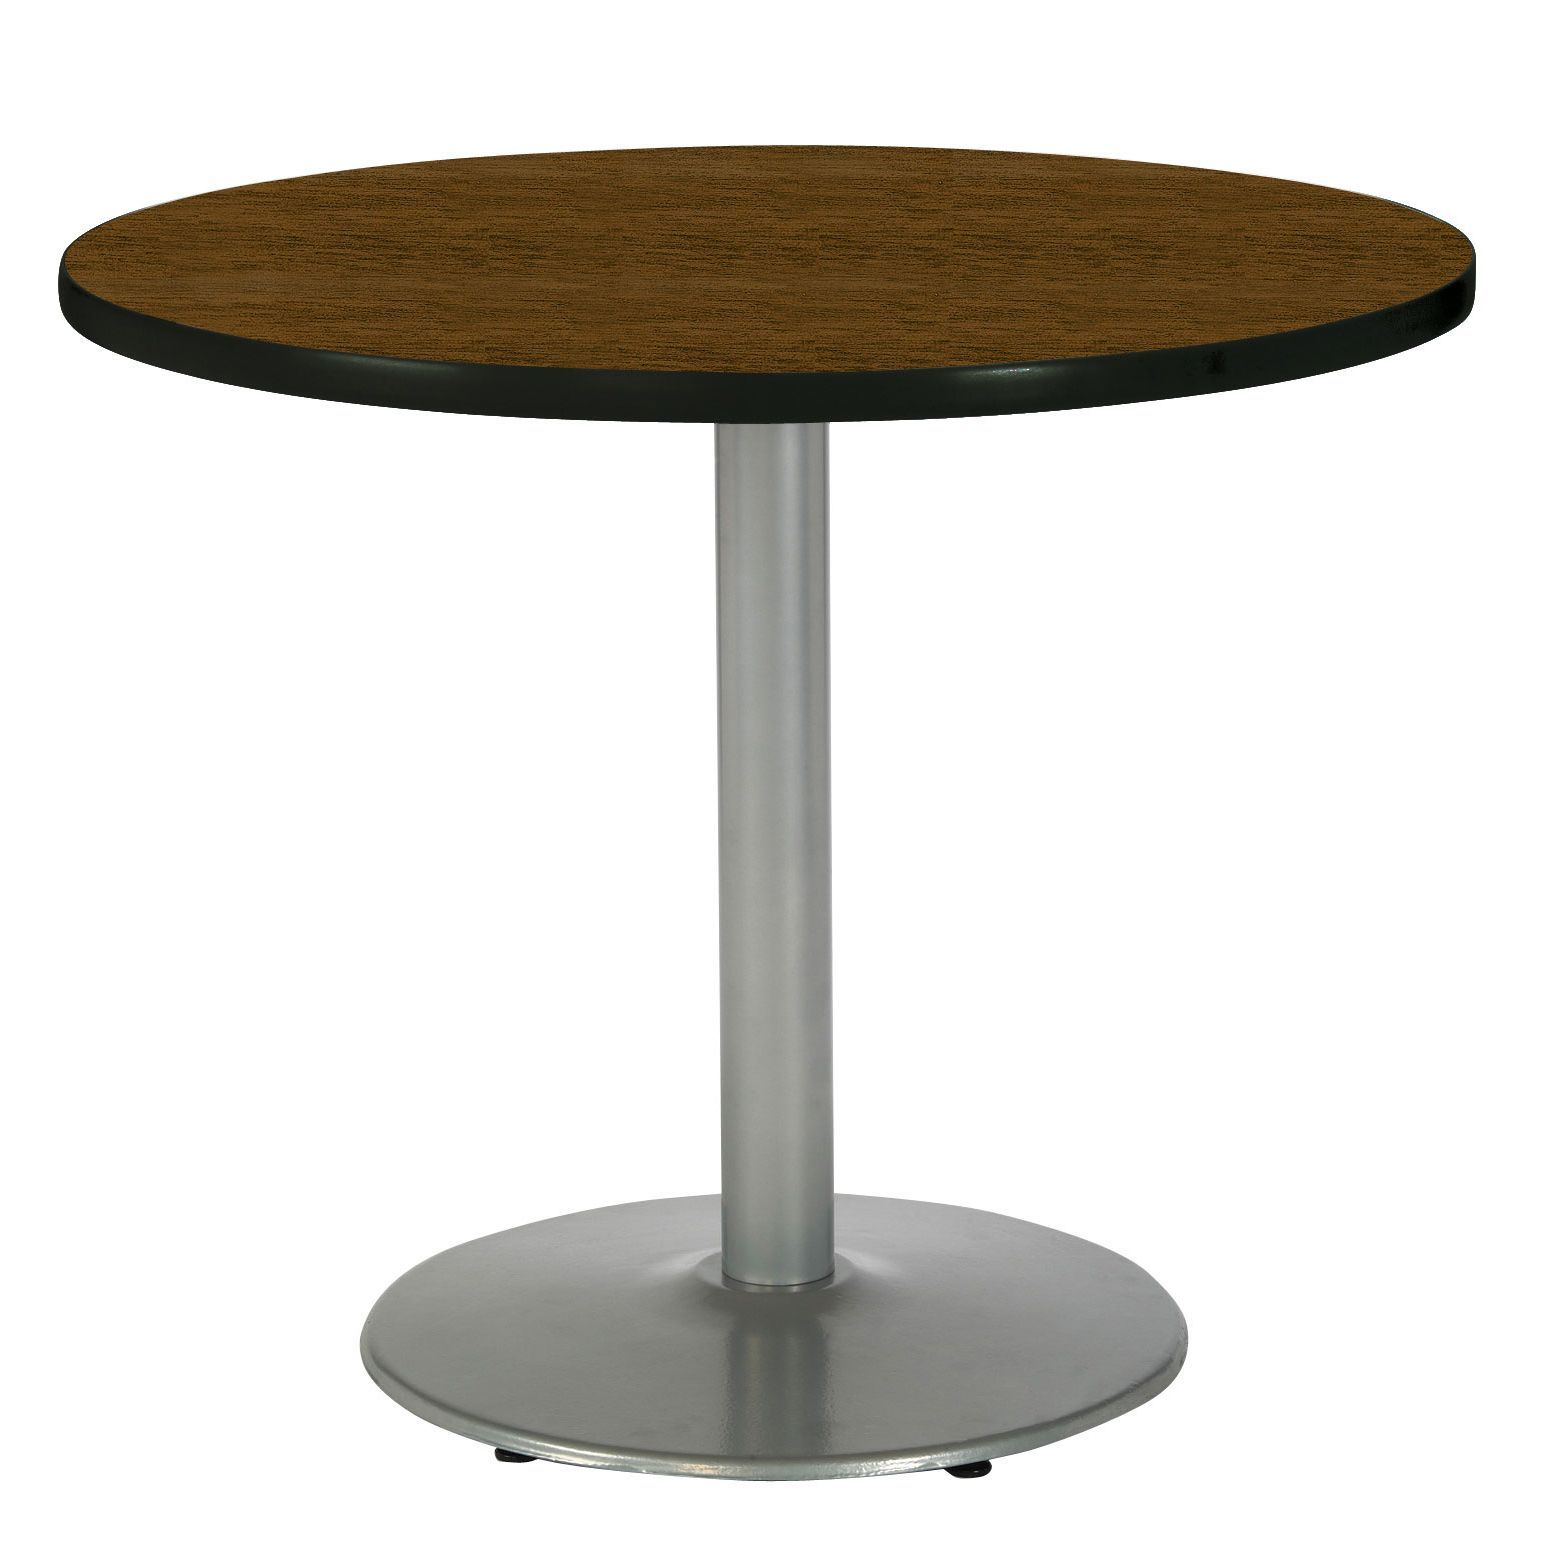 Inch Round Pedestal Table With Round Silver Base Products - 36 inch round office table